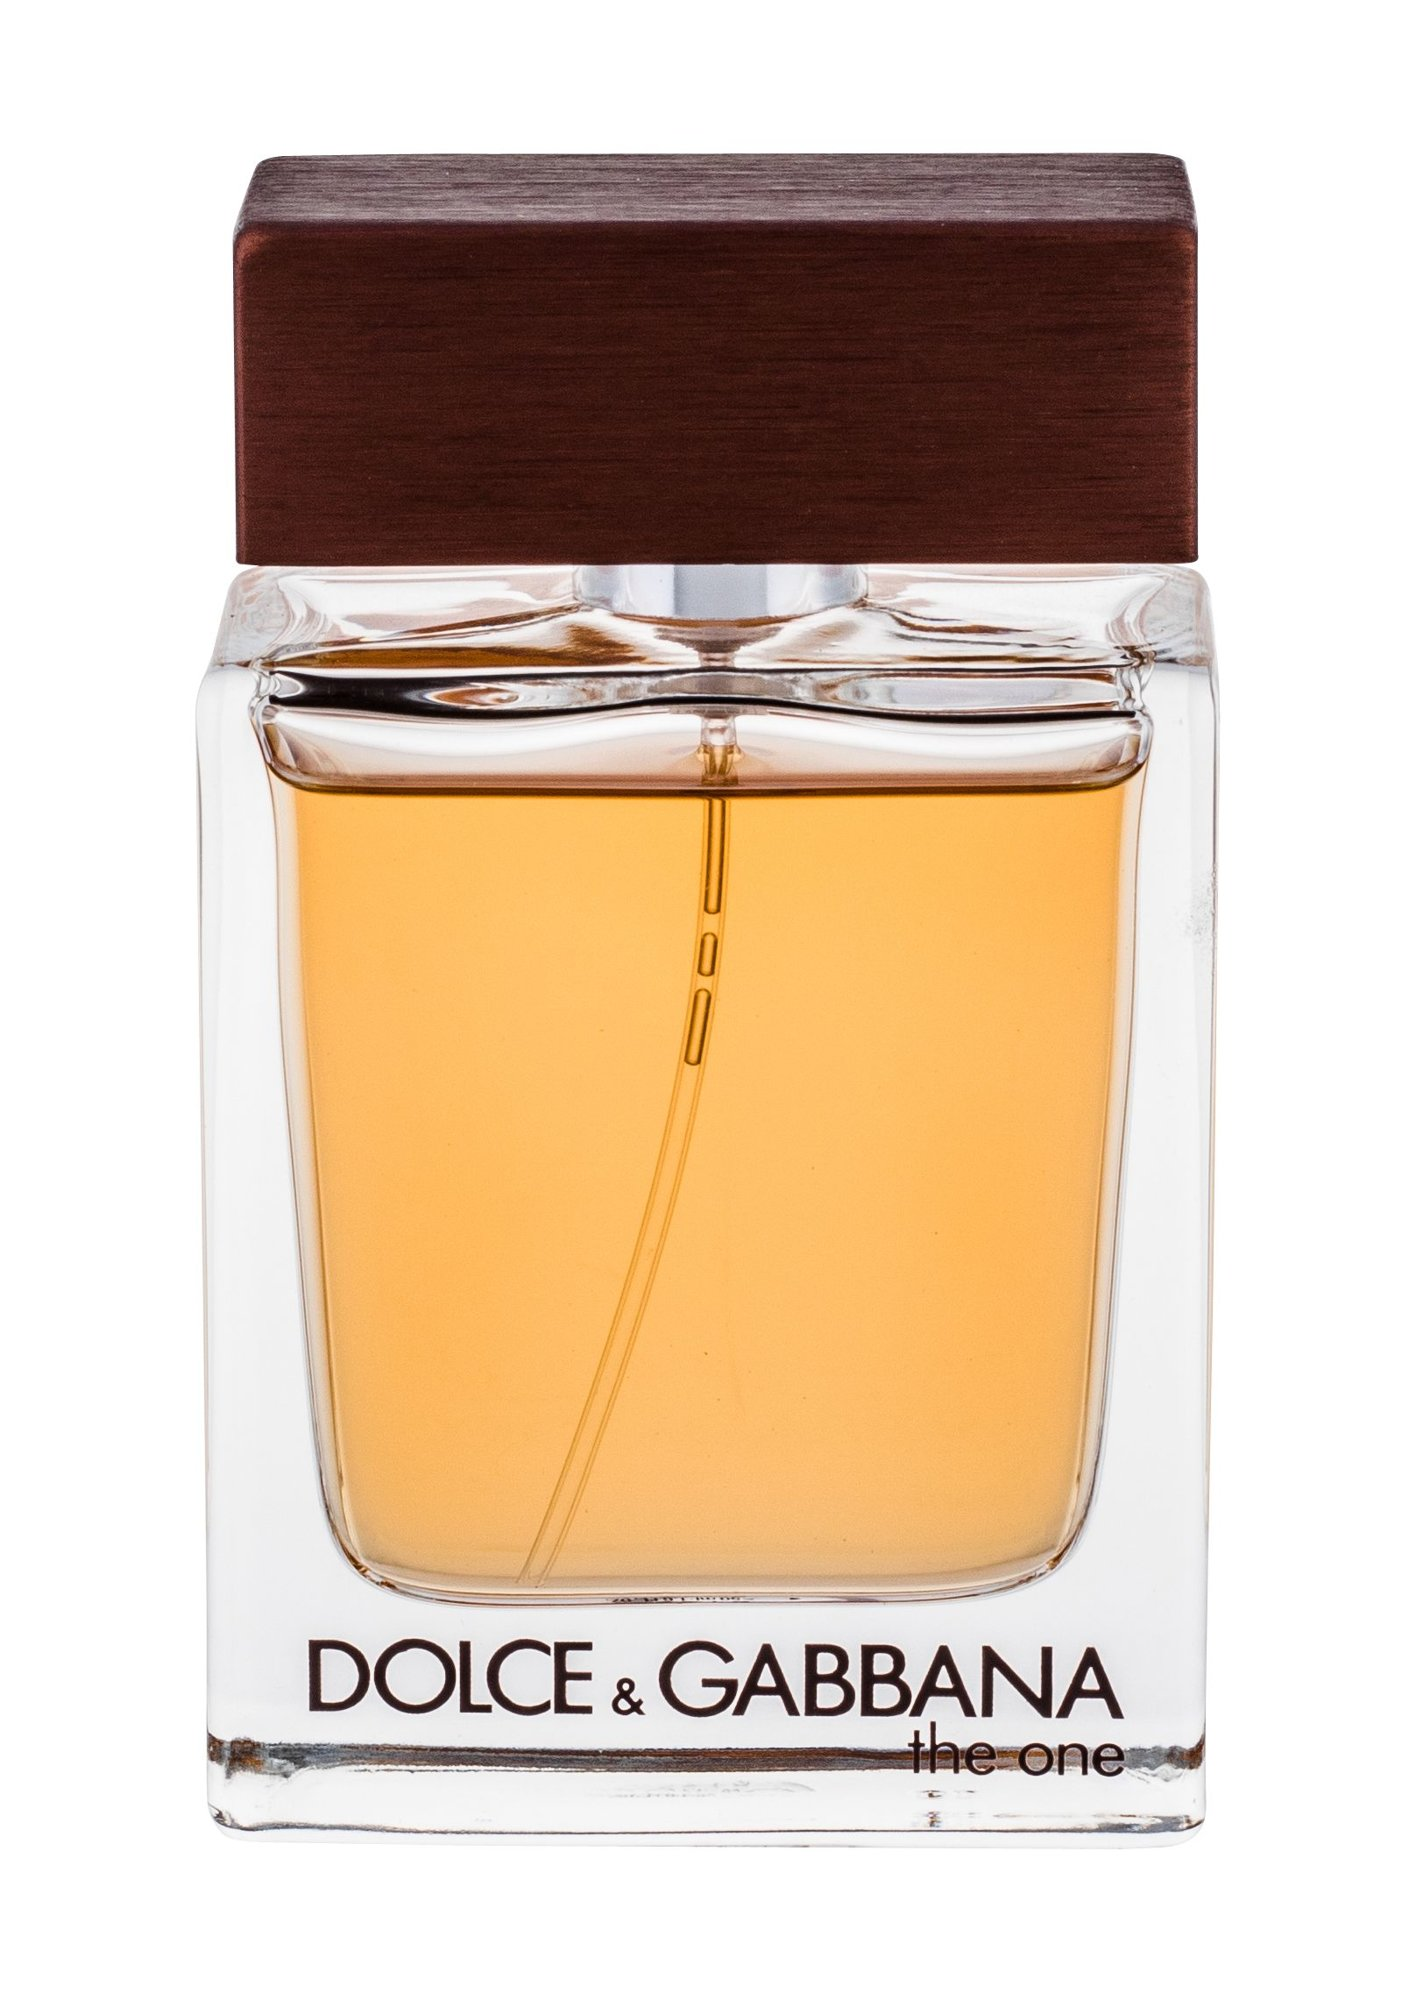 Dolce&Gabbana The One For Men Eau de Toilette 50ml